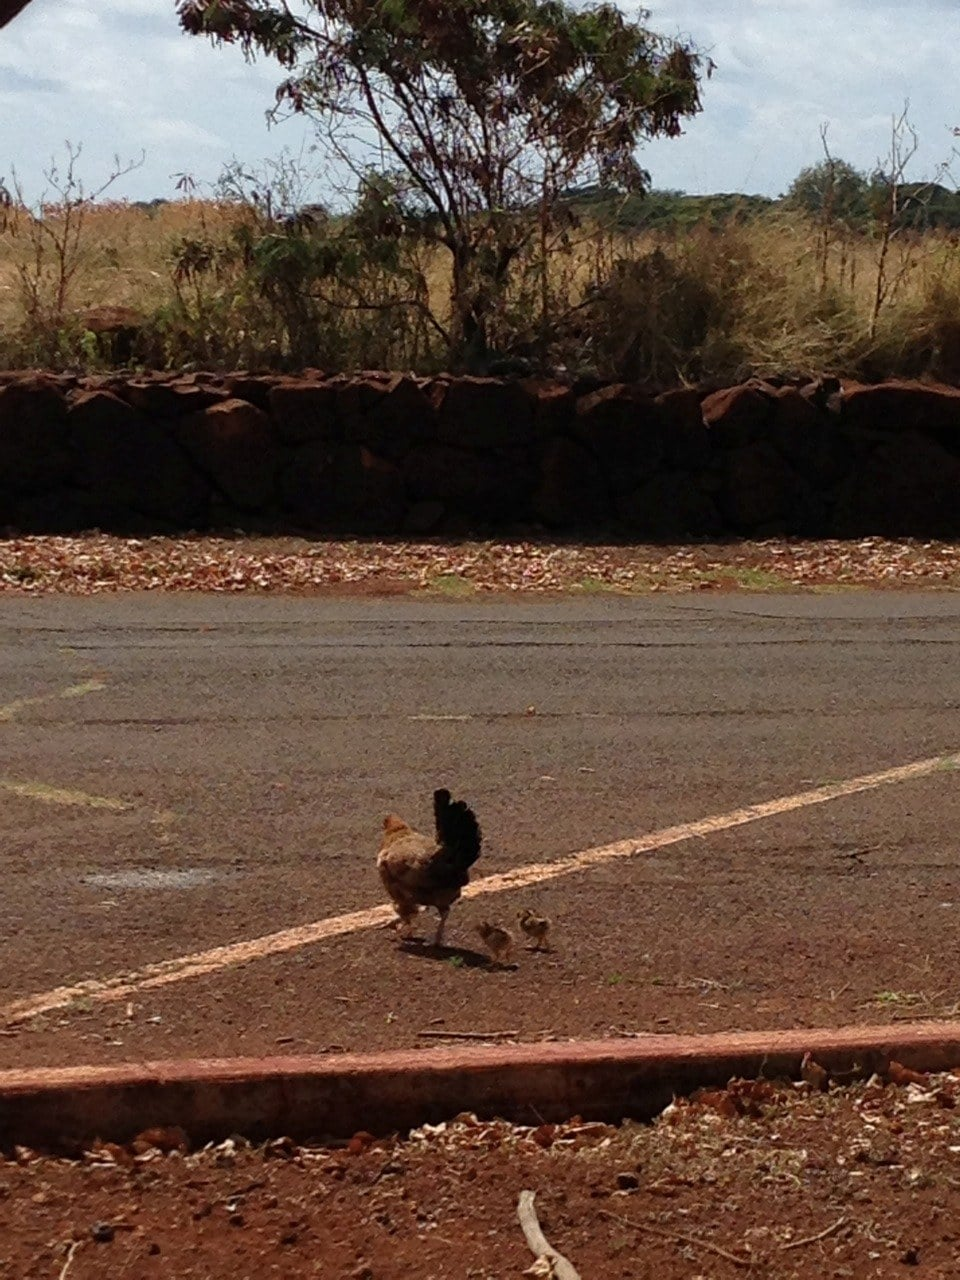 Yes, those are chickens crossing the road.